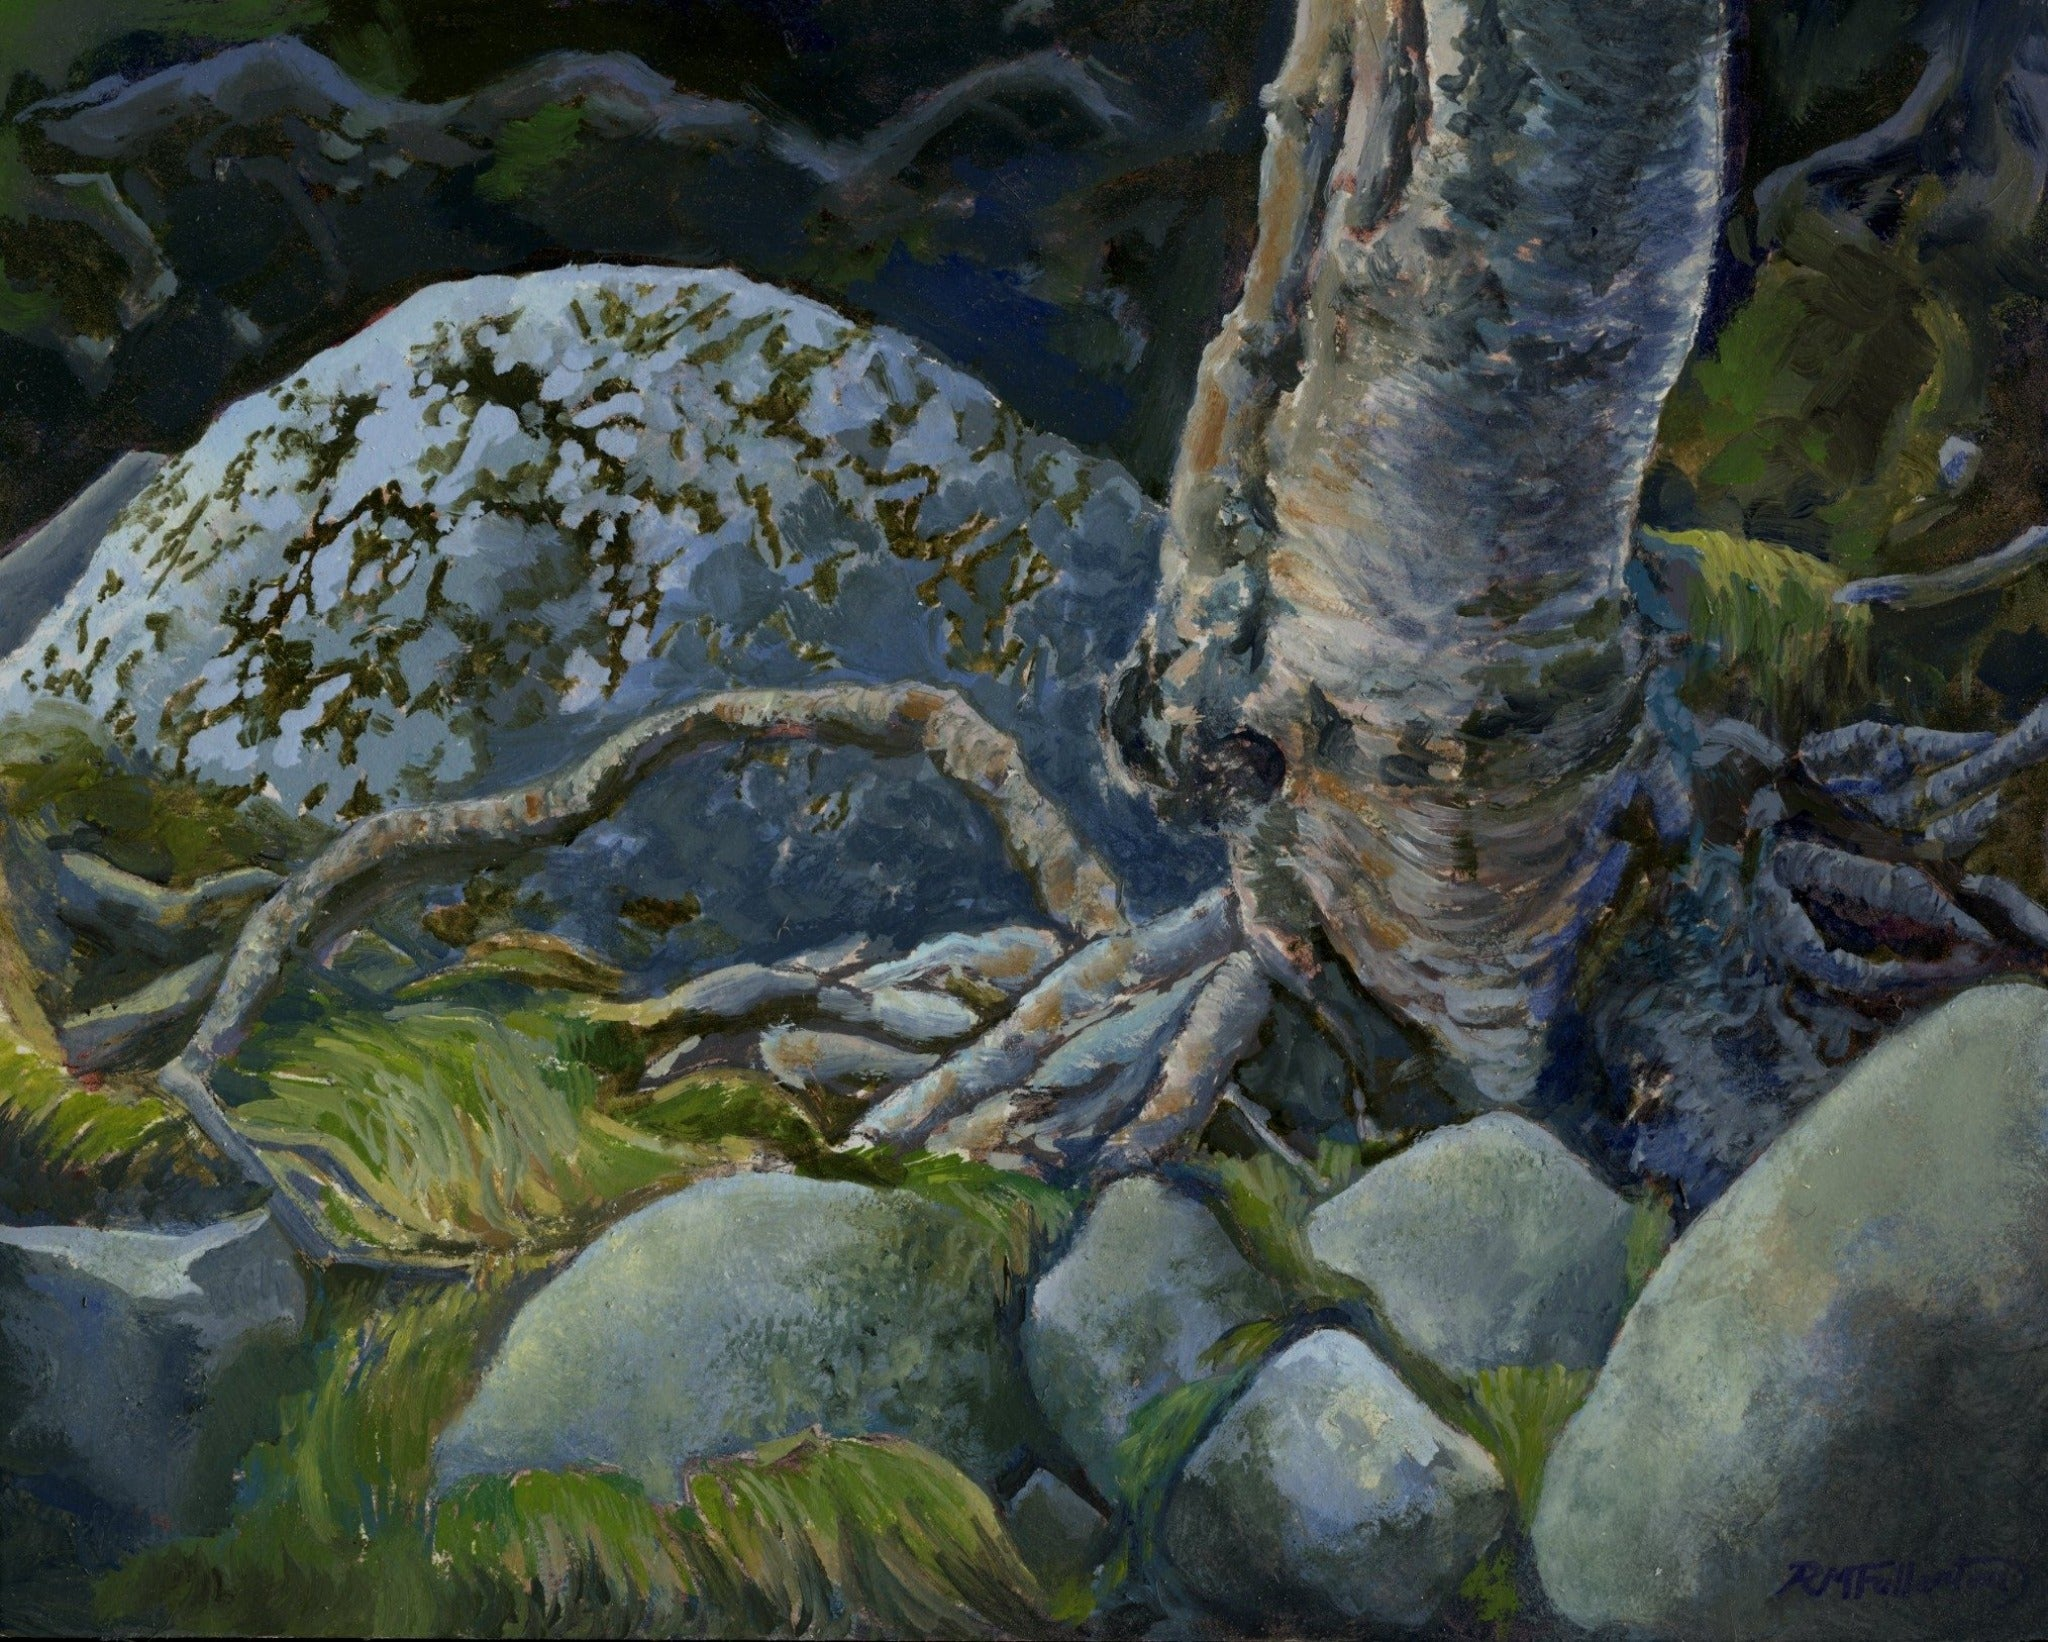 """Roots and Rocks"" is an 8 by 10 inch oil painting on panel by Rebecca M. Fullerton, depicting gray, granite rocks, green grasses and moss, and the twisting roots of a silver birch."